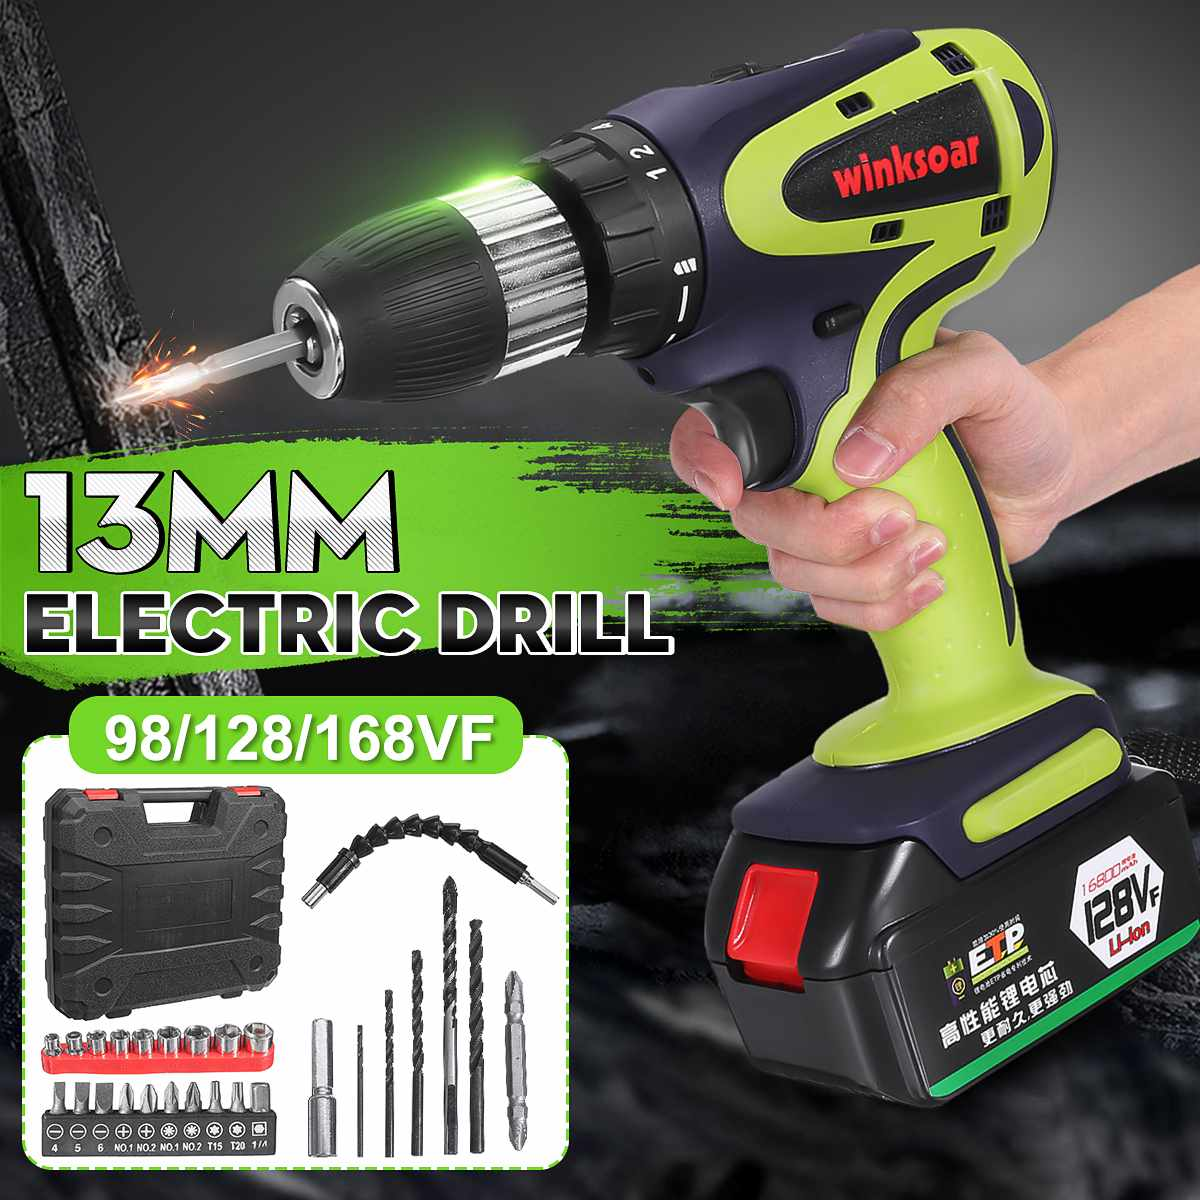 250W Wireless Electric Screwdriver Three Speed Adjustable Rechargeable Electric Drill Powers Driver With 13mm Lithium Ionbattery